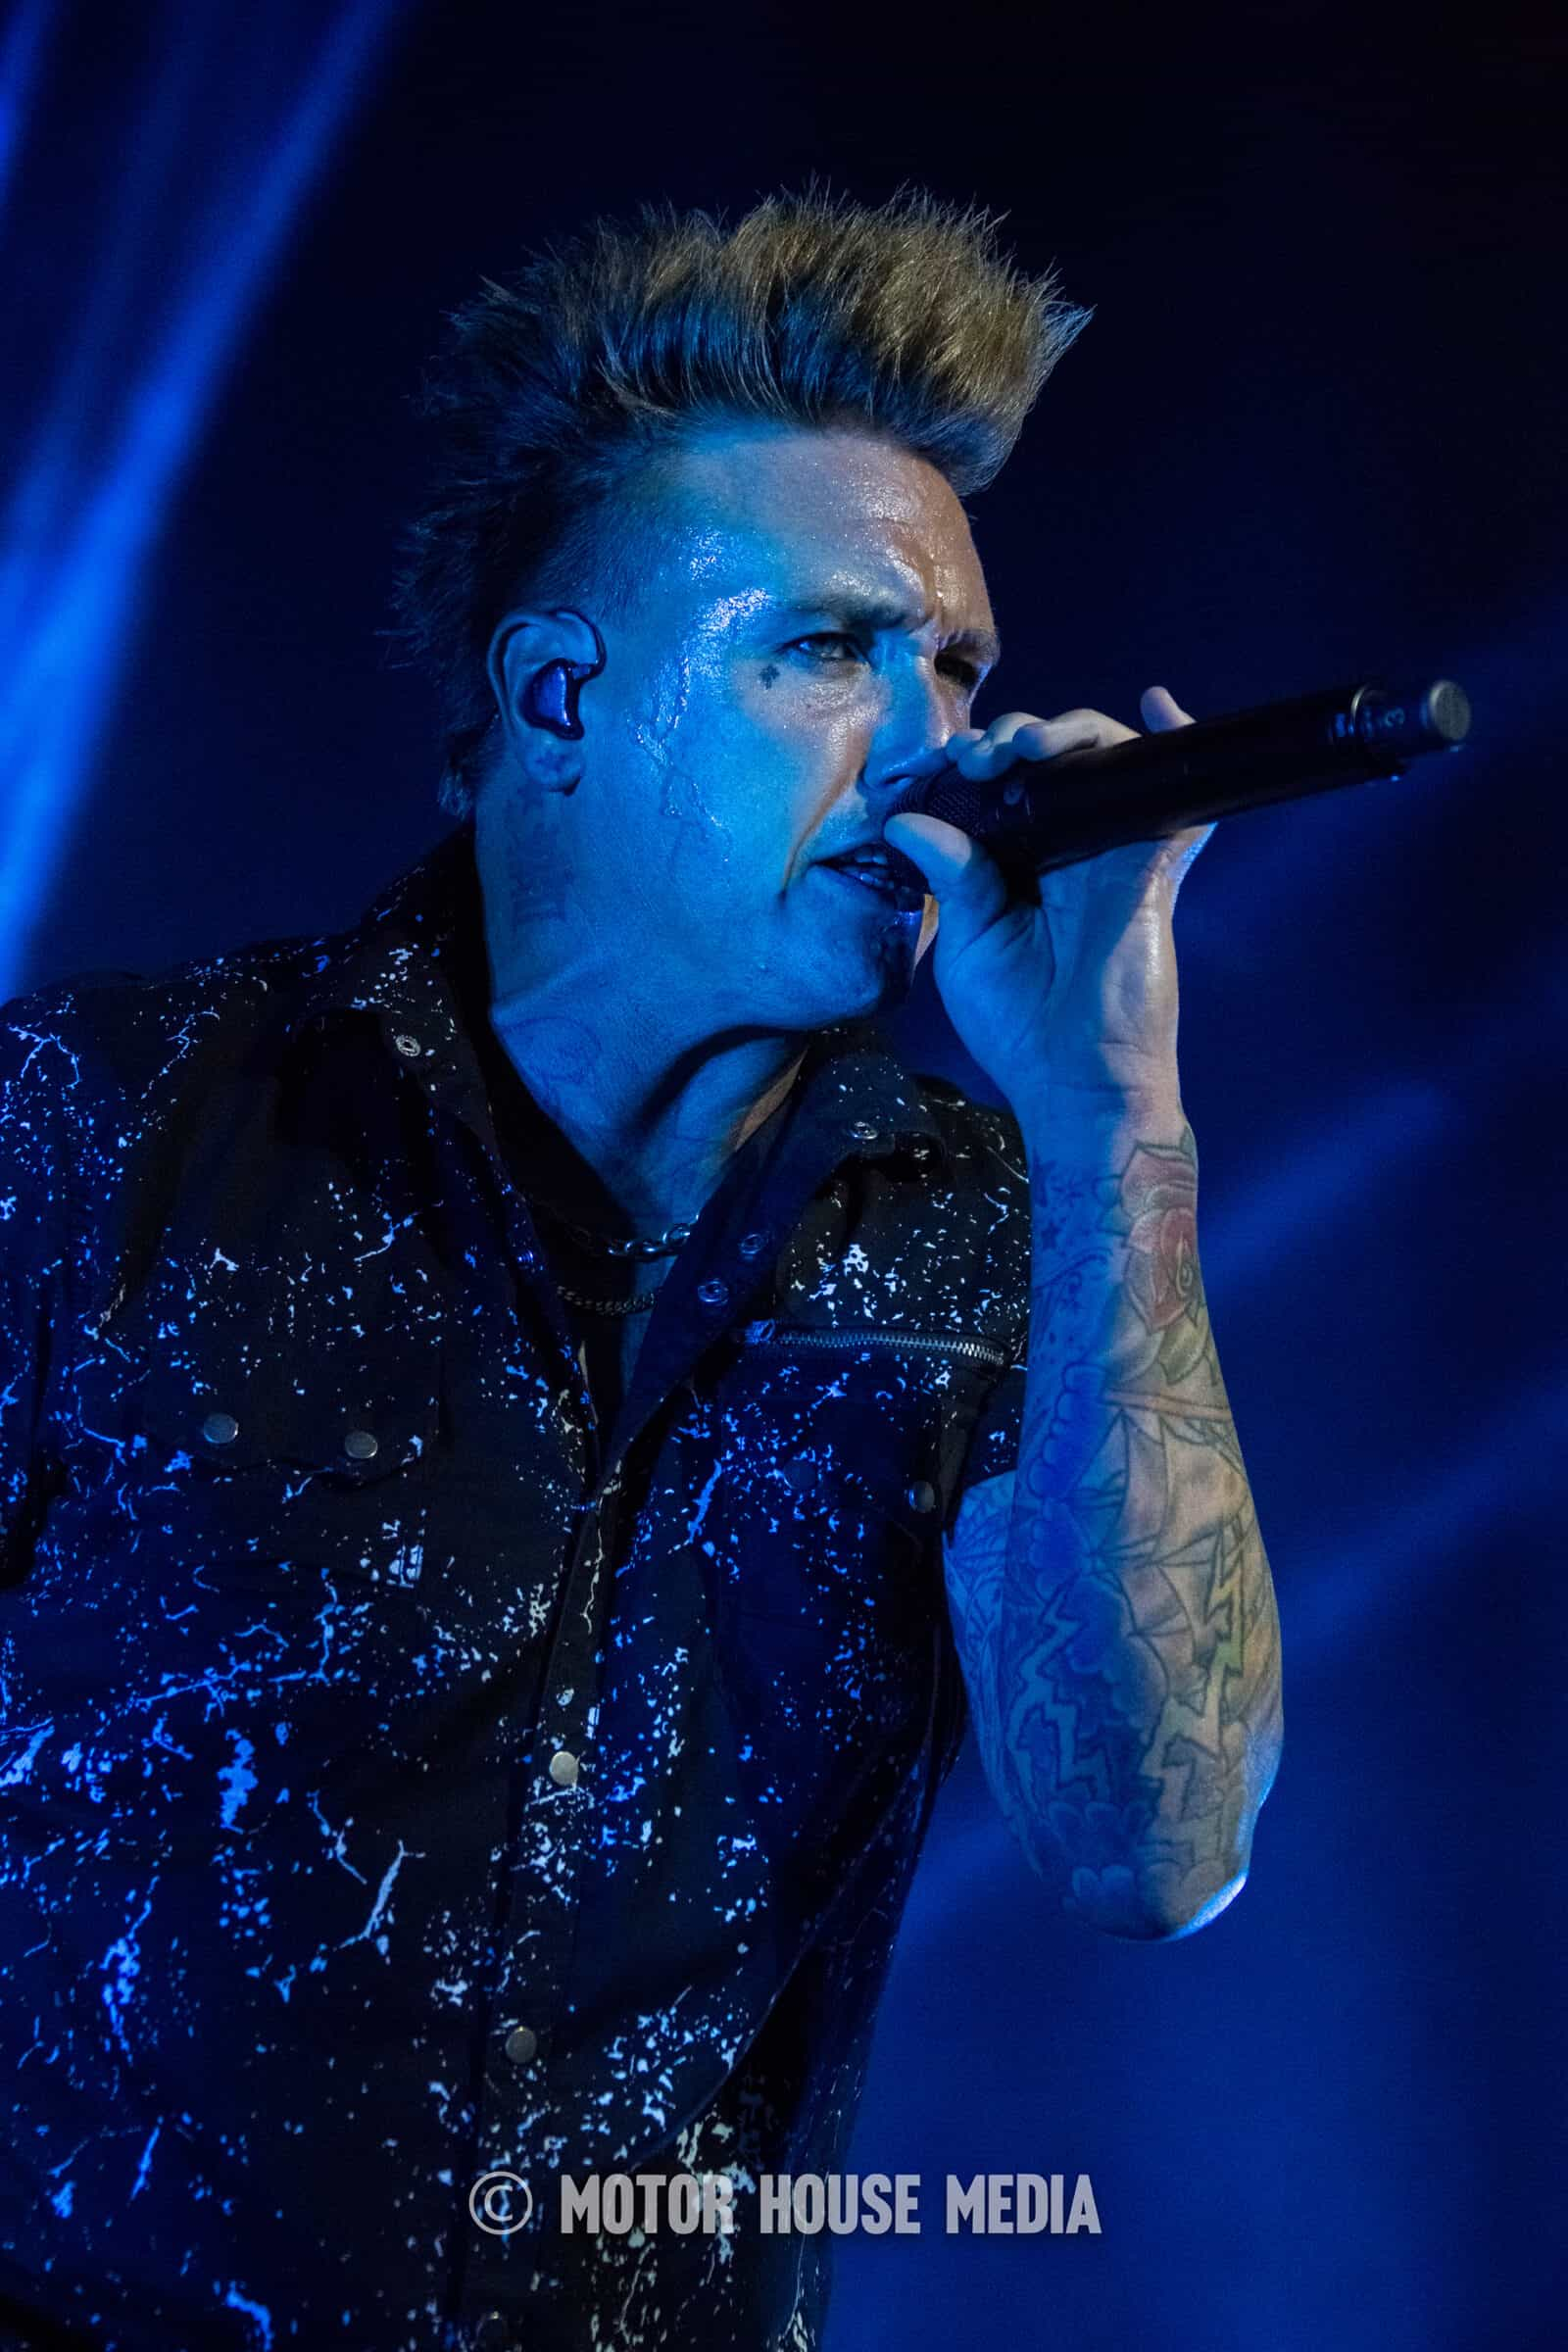 Jacoby Shaddix cast in blue light